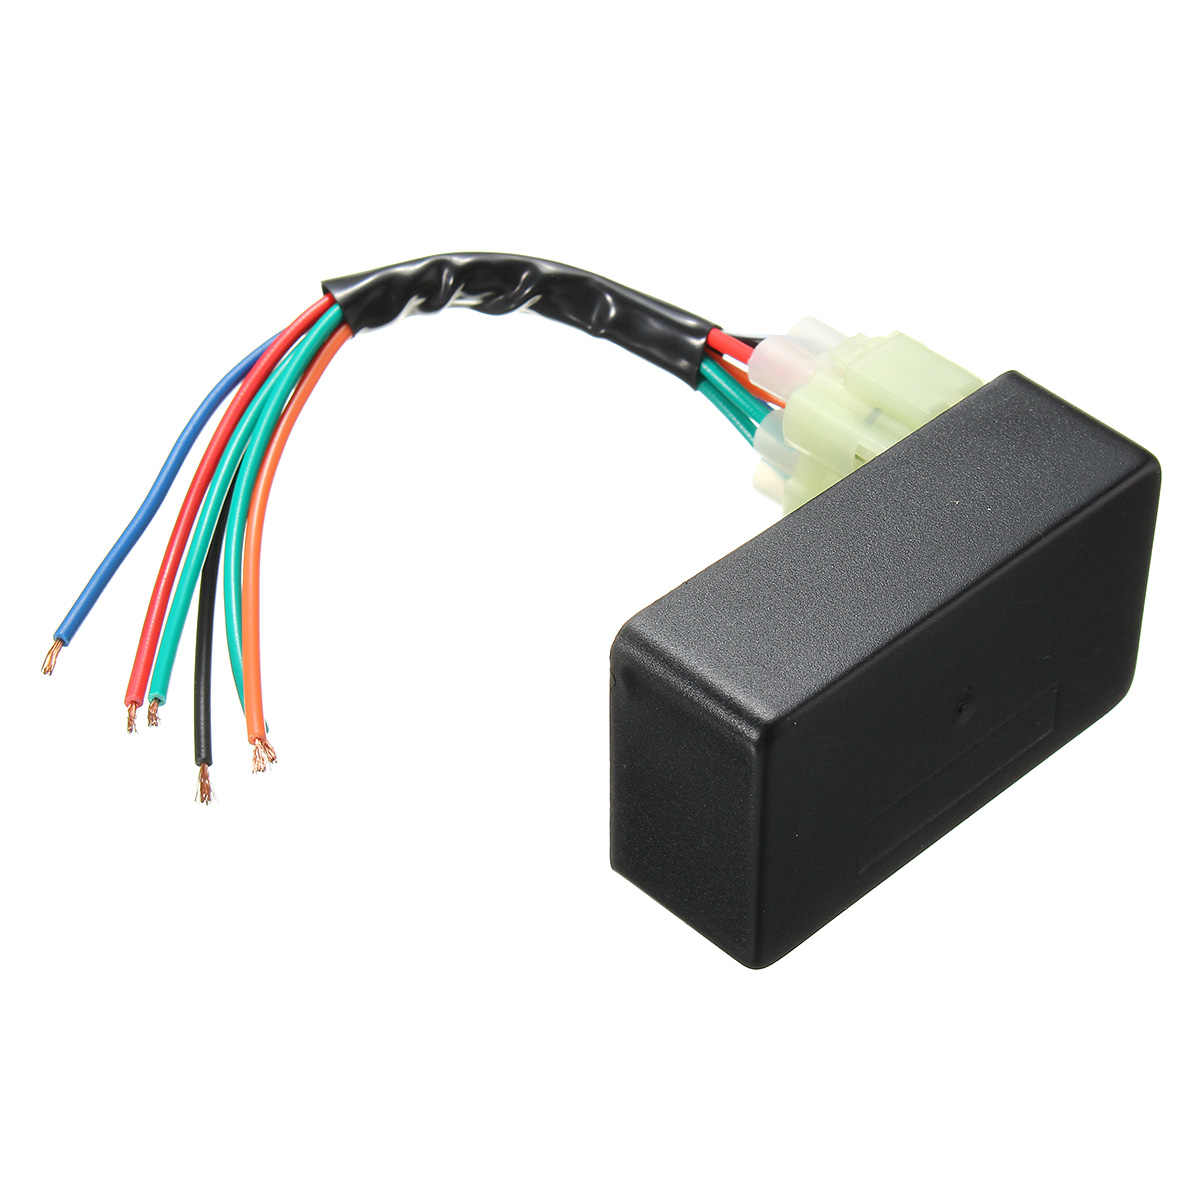 High Performance CDI Box with Wires For Honda TRX300 Fourtrax 1988-1993